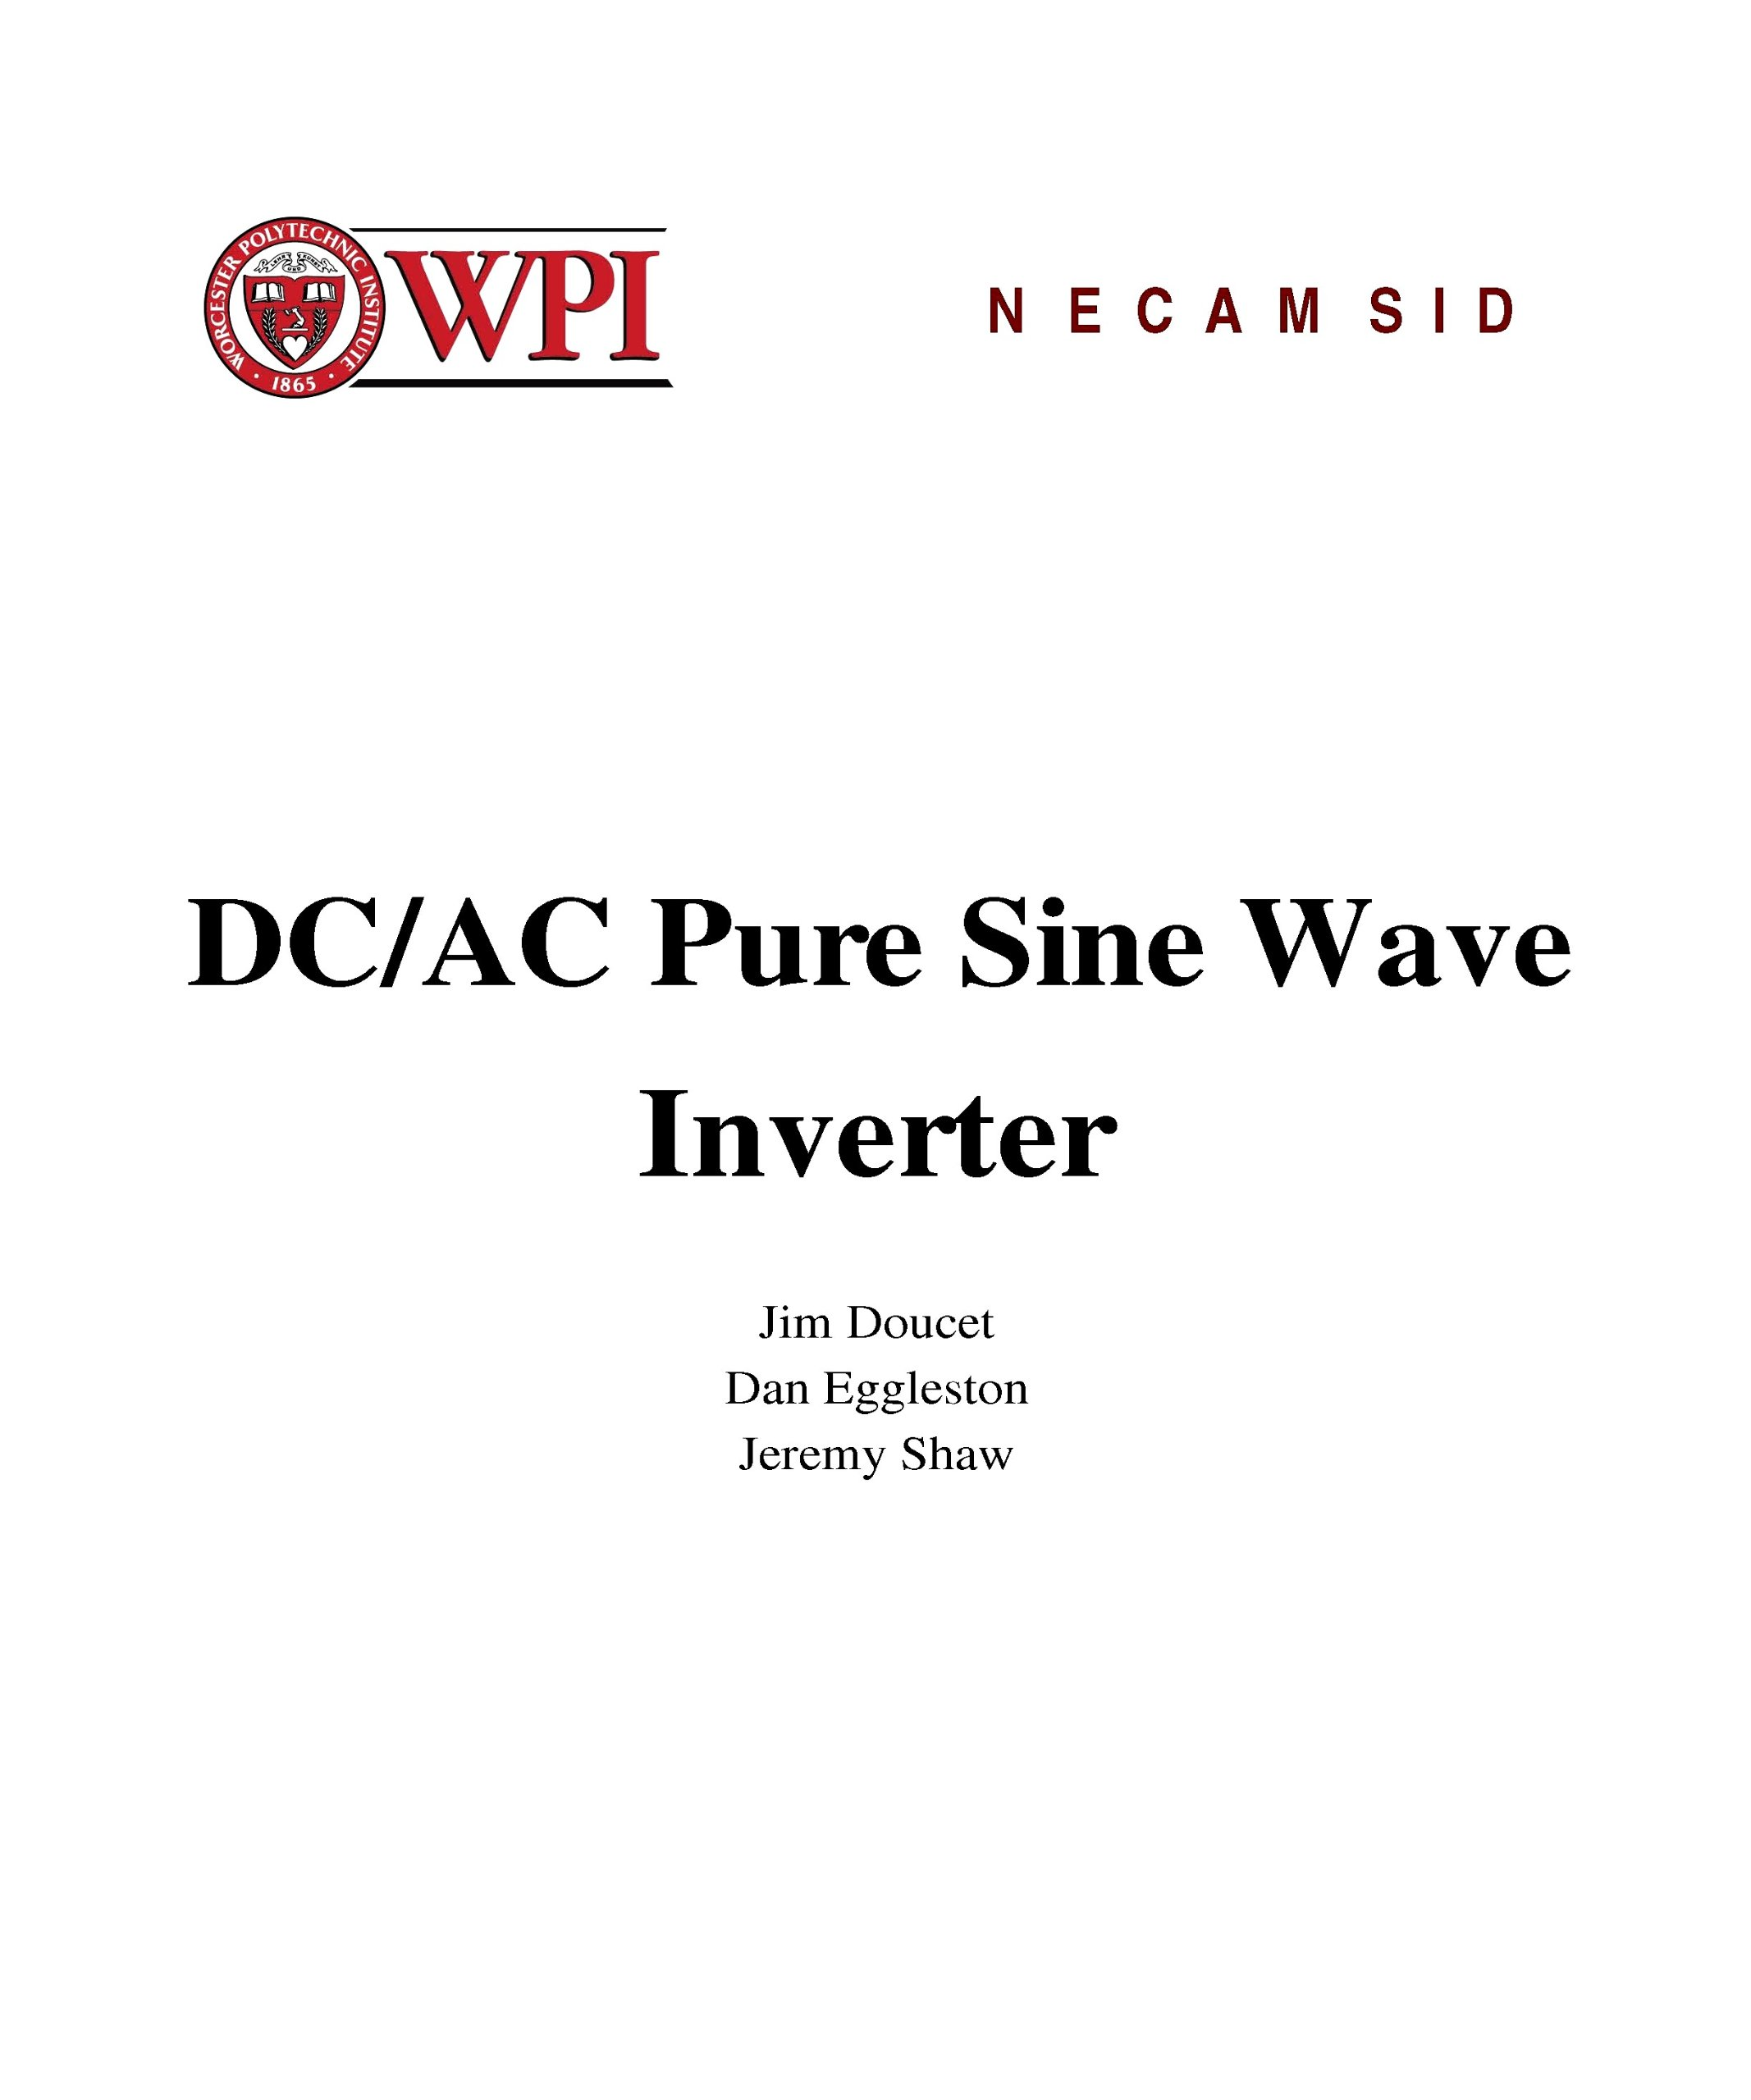 Dc Ac Pure Sine Wave Inverter With Description Design Circuit To Converter Diagram Electronic Circuits Diagrams Pcb Board And Flow Chart Wpi Student Loose Leaf Edition Jim Doucet